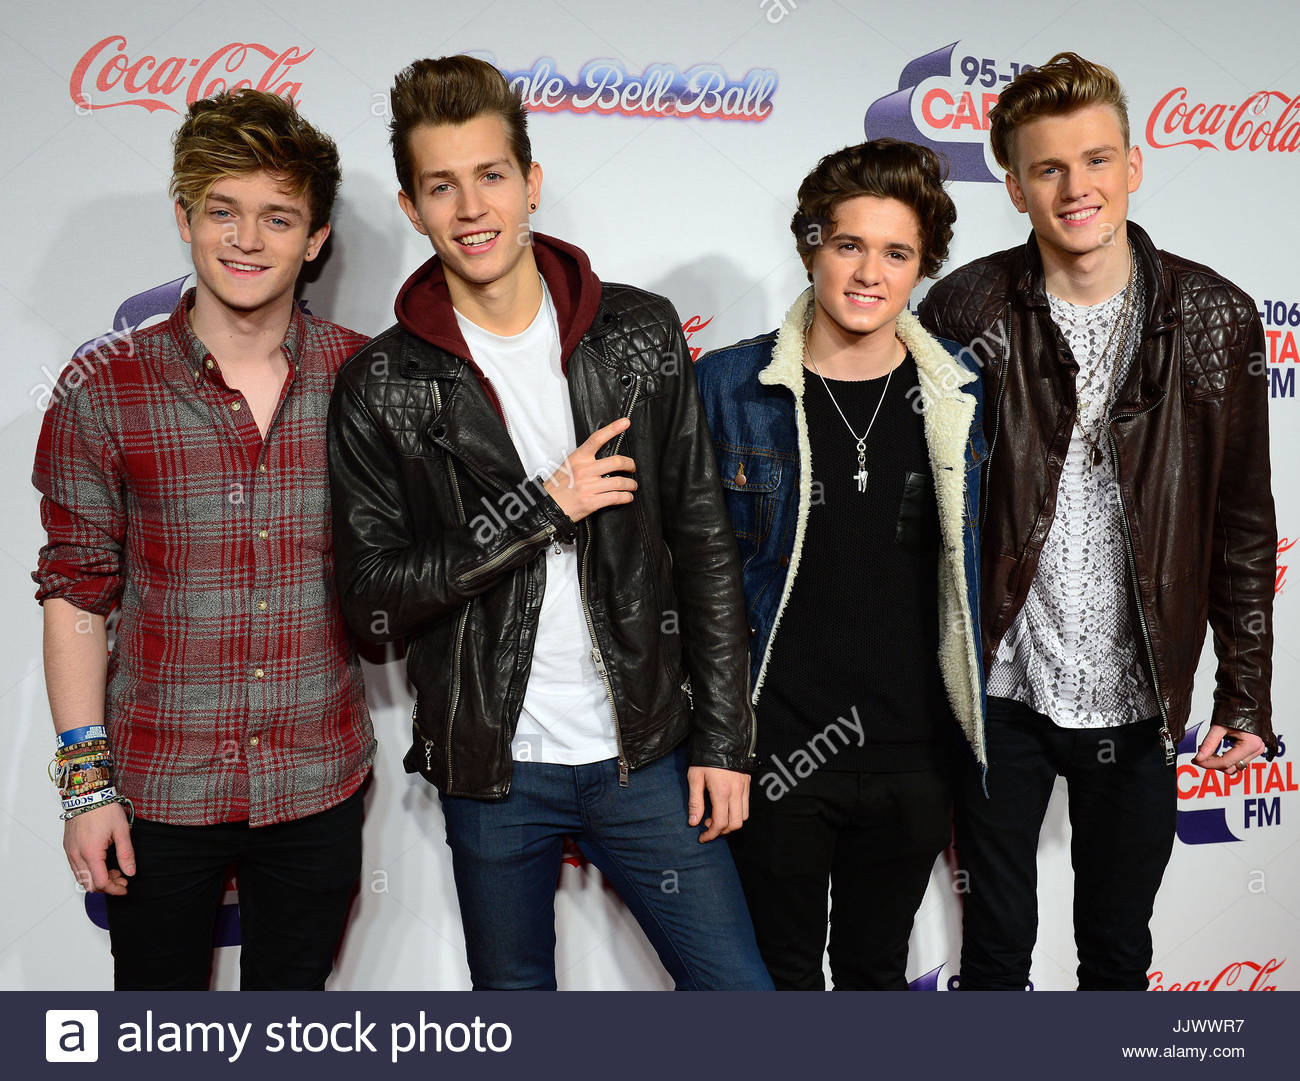 Bradley Simpson James Mcvey Connor Ball And Tristan Evans Of The